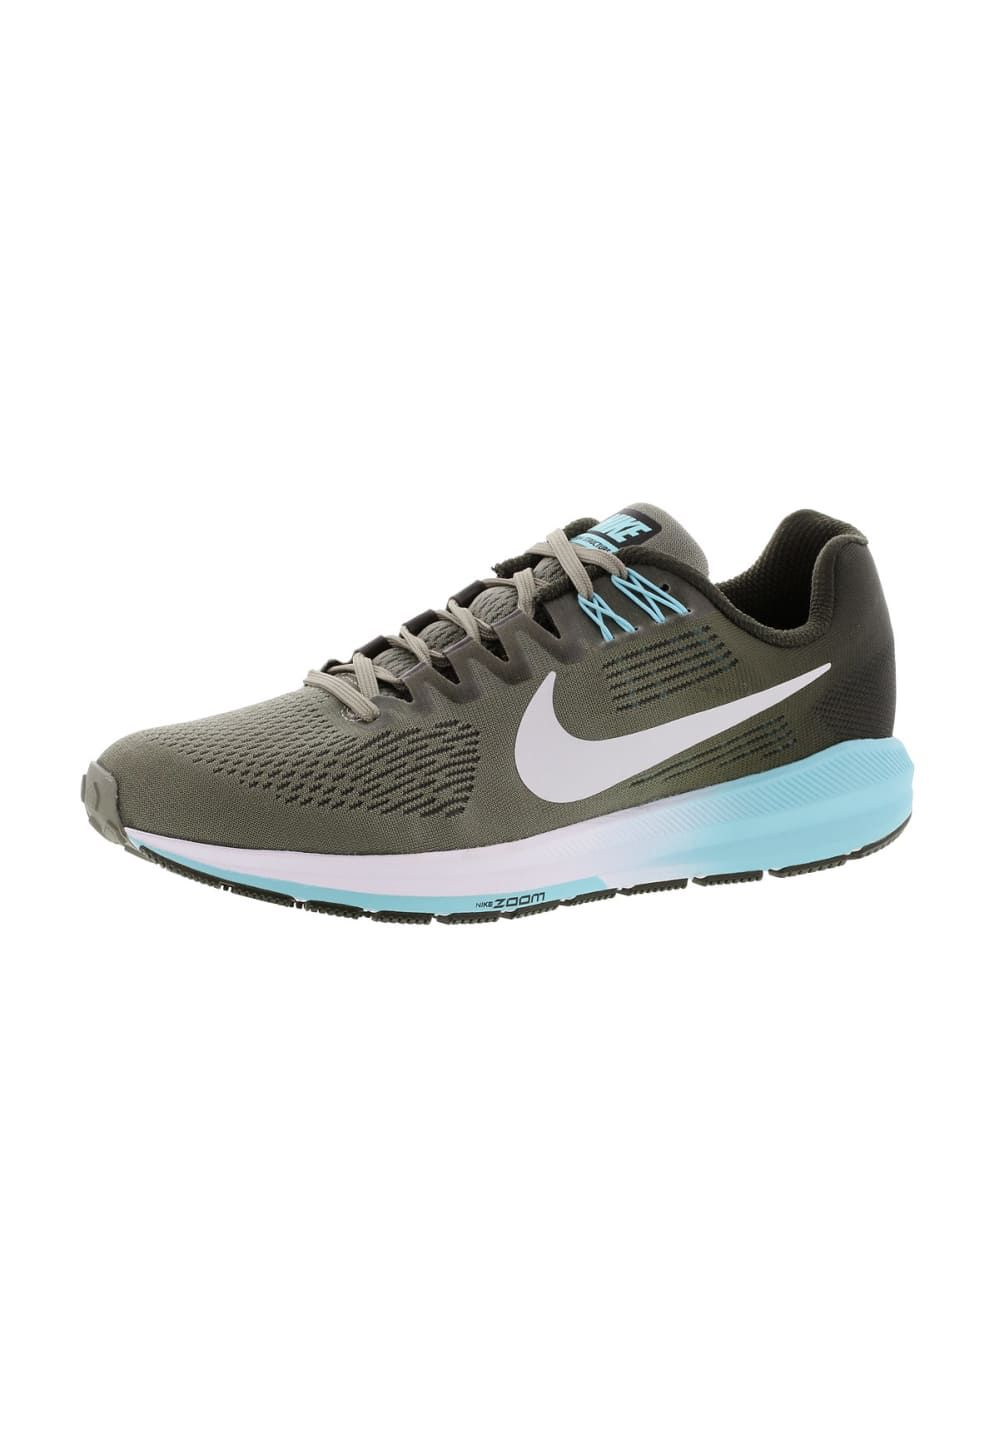 bfb7a257137 Nike Air Zoom Structure 21 - Chaussures running pour Femme - Vert Boutiques